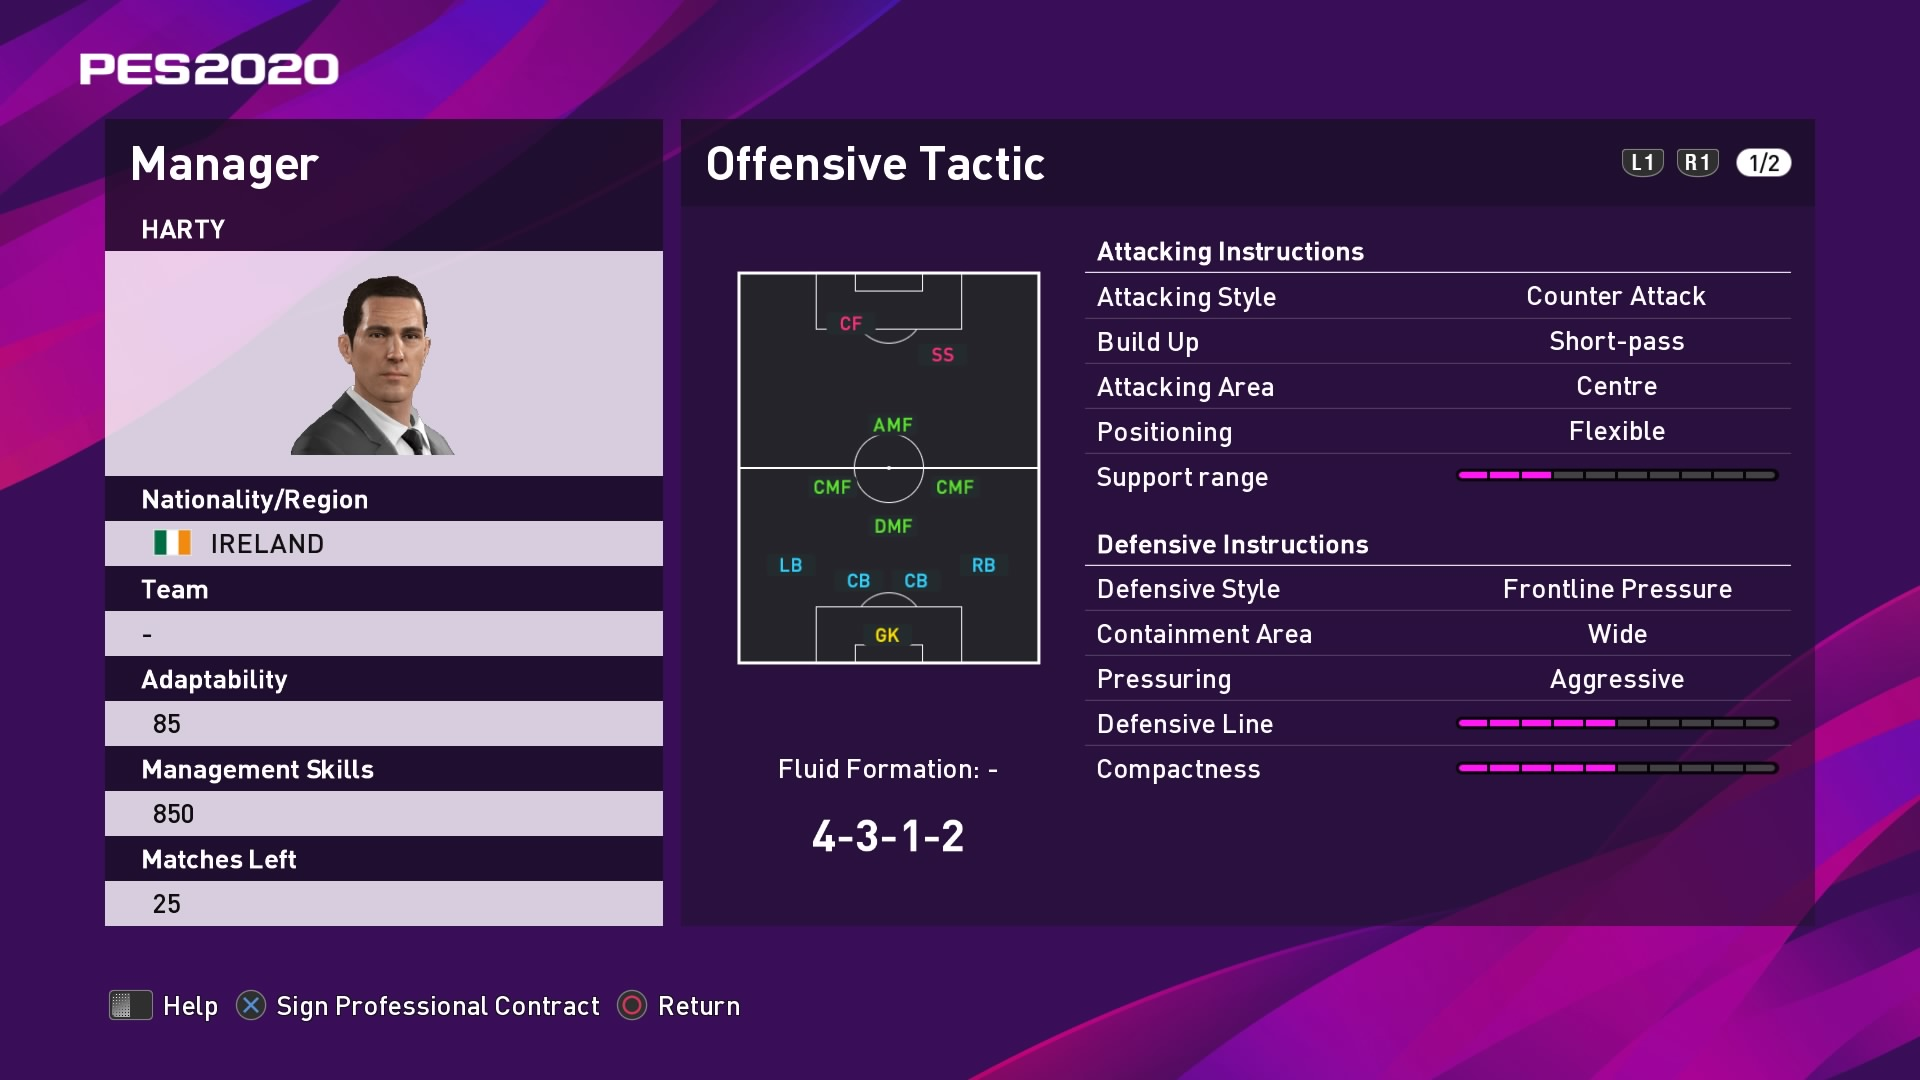 Harty Offensive Tactic in PES 2020 myClub